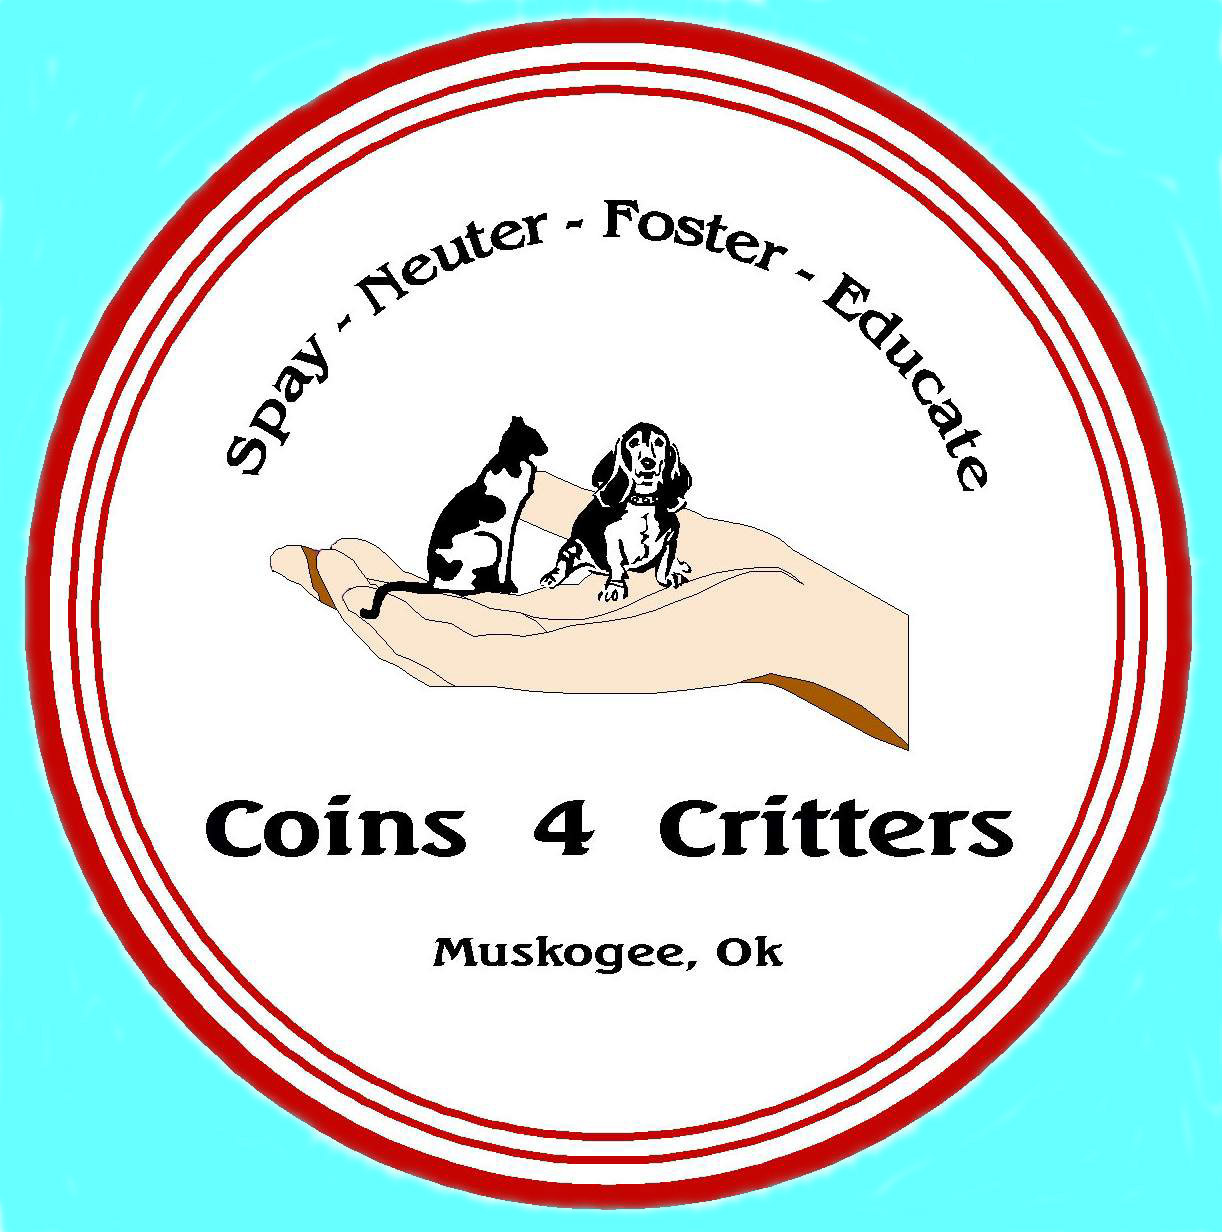 Coins 4 Critters